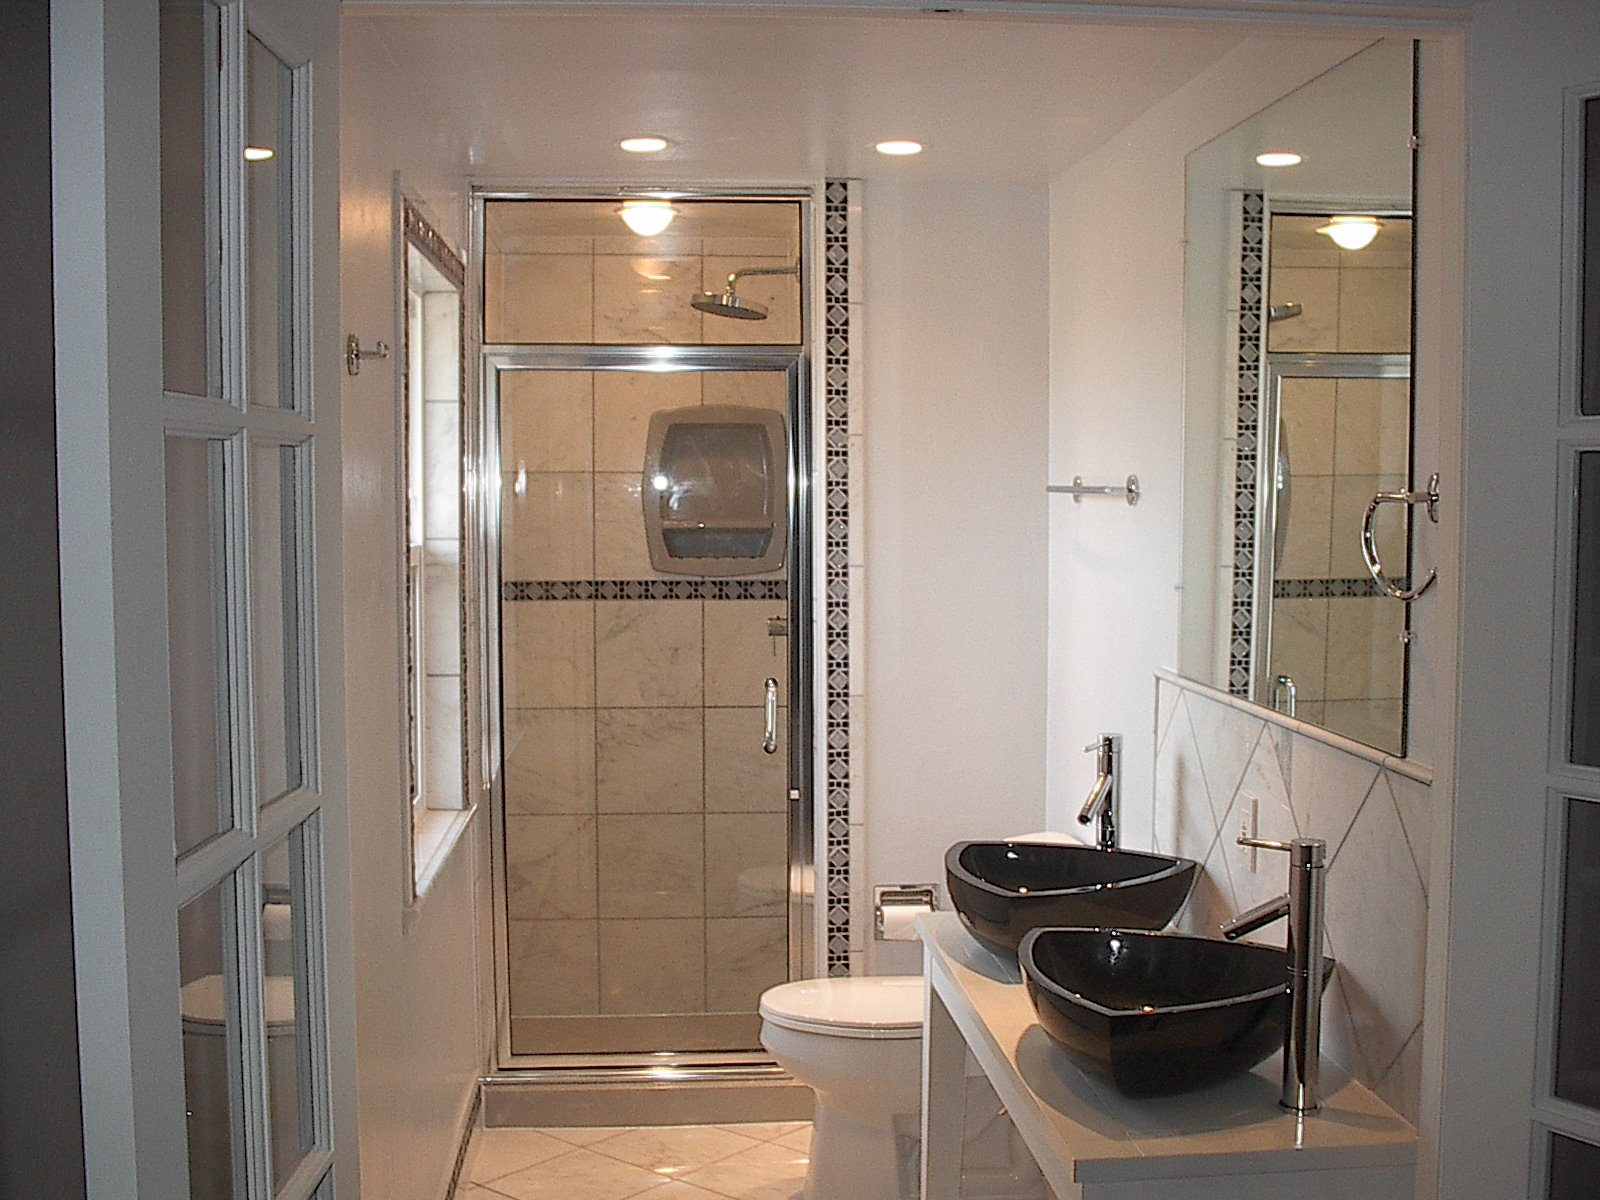 Easy Bathroom Remodel Ideas 10 quick bathroom updates on a dime day 13 making lemonade. easy